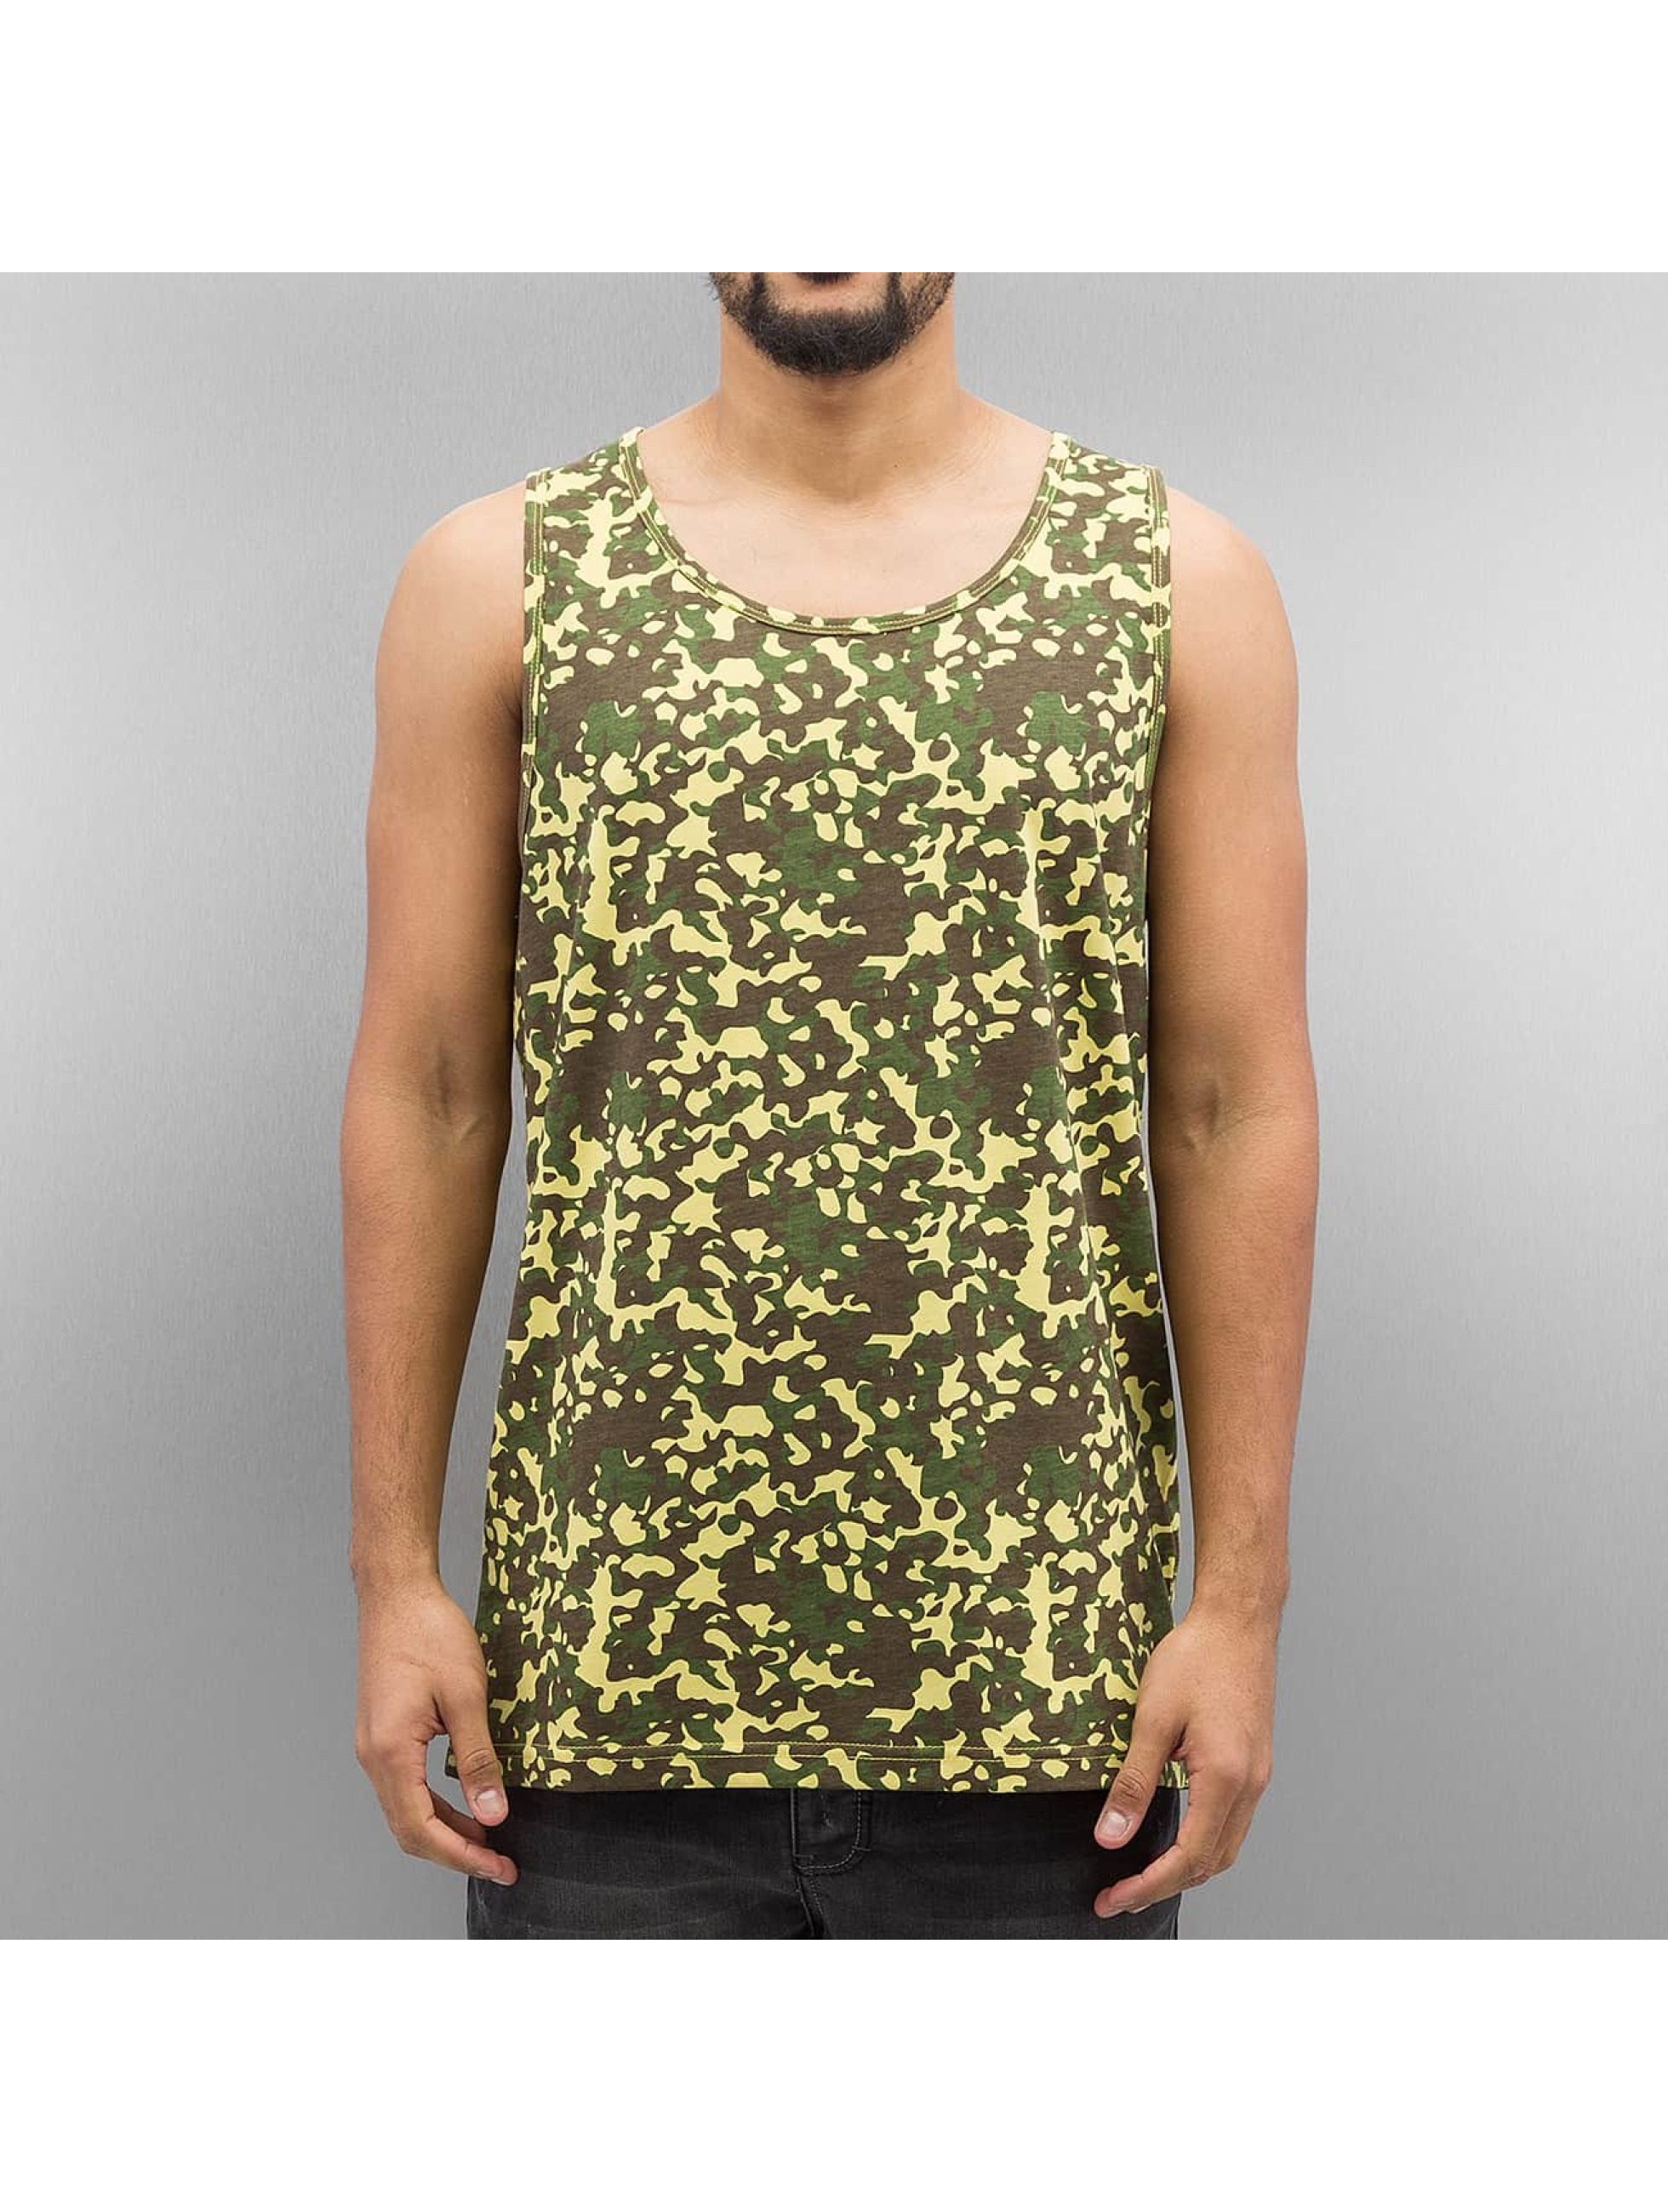 Cyprime / Tank Tops Tank Top in camouflage M